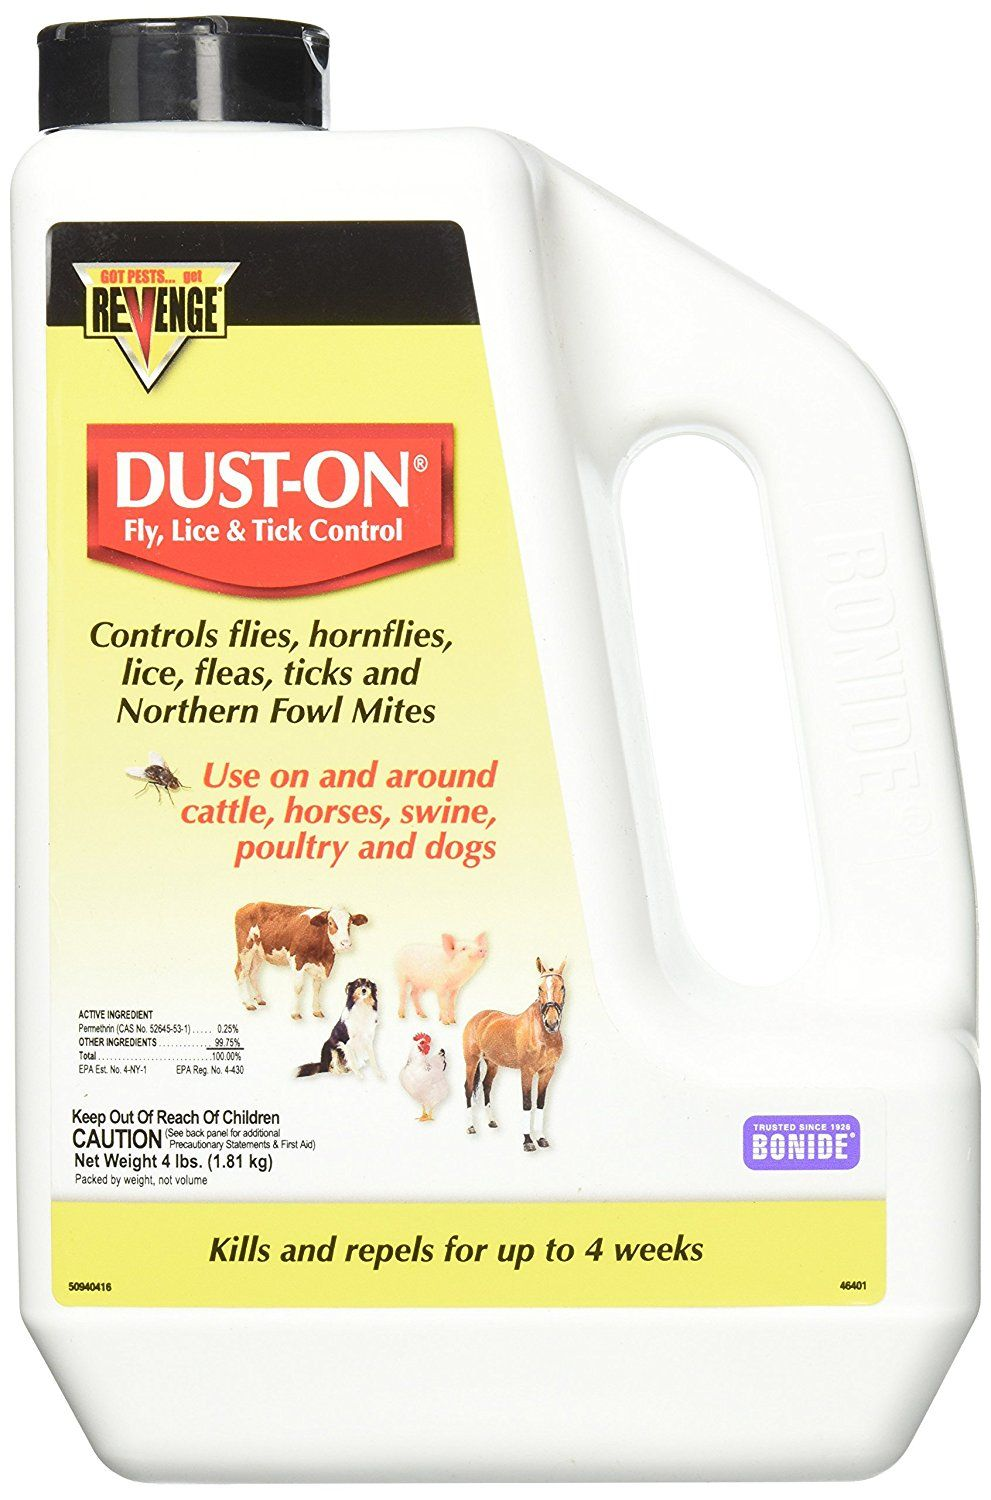 Bonide Products DustOn, 4 lb You can find more details